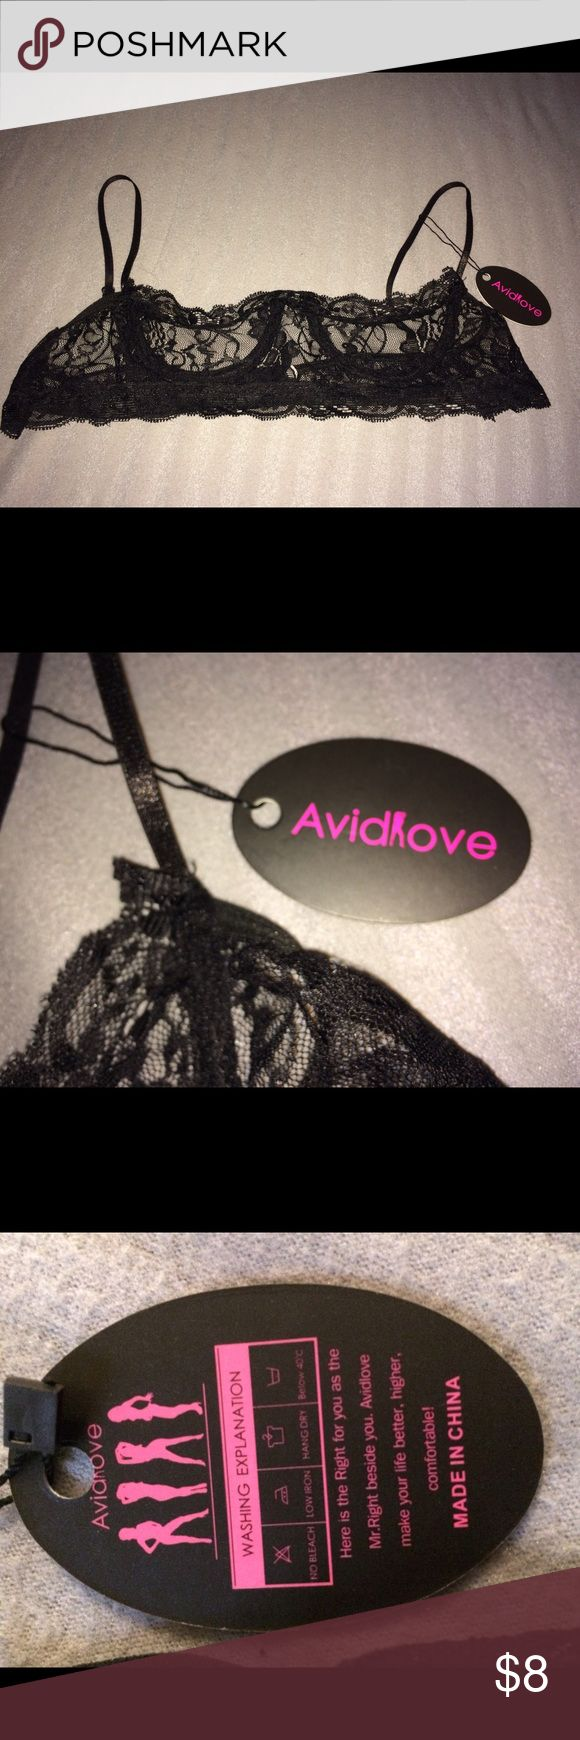 NWT Avidlove black lace open cup bra size medium New with tags. Runs small. Open cup underwire adjustable straps Intimates & Sleepwear Bras